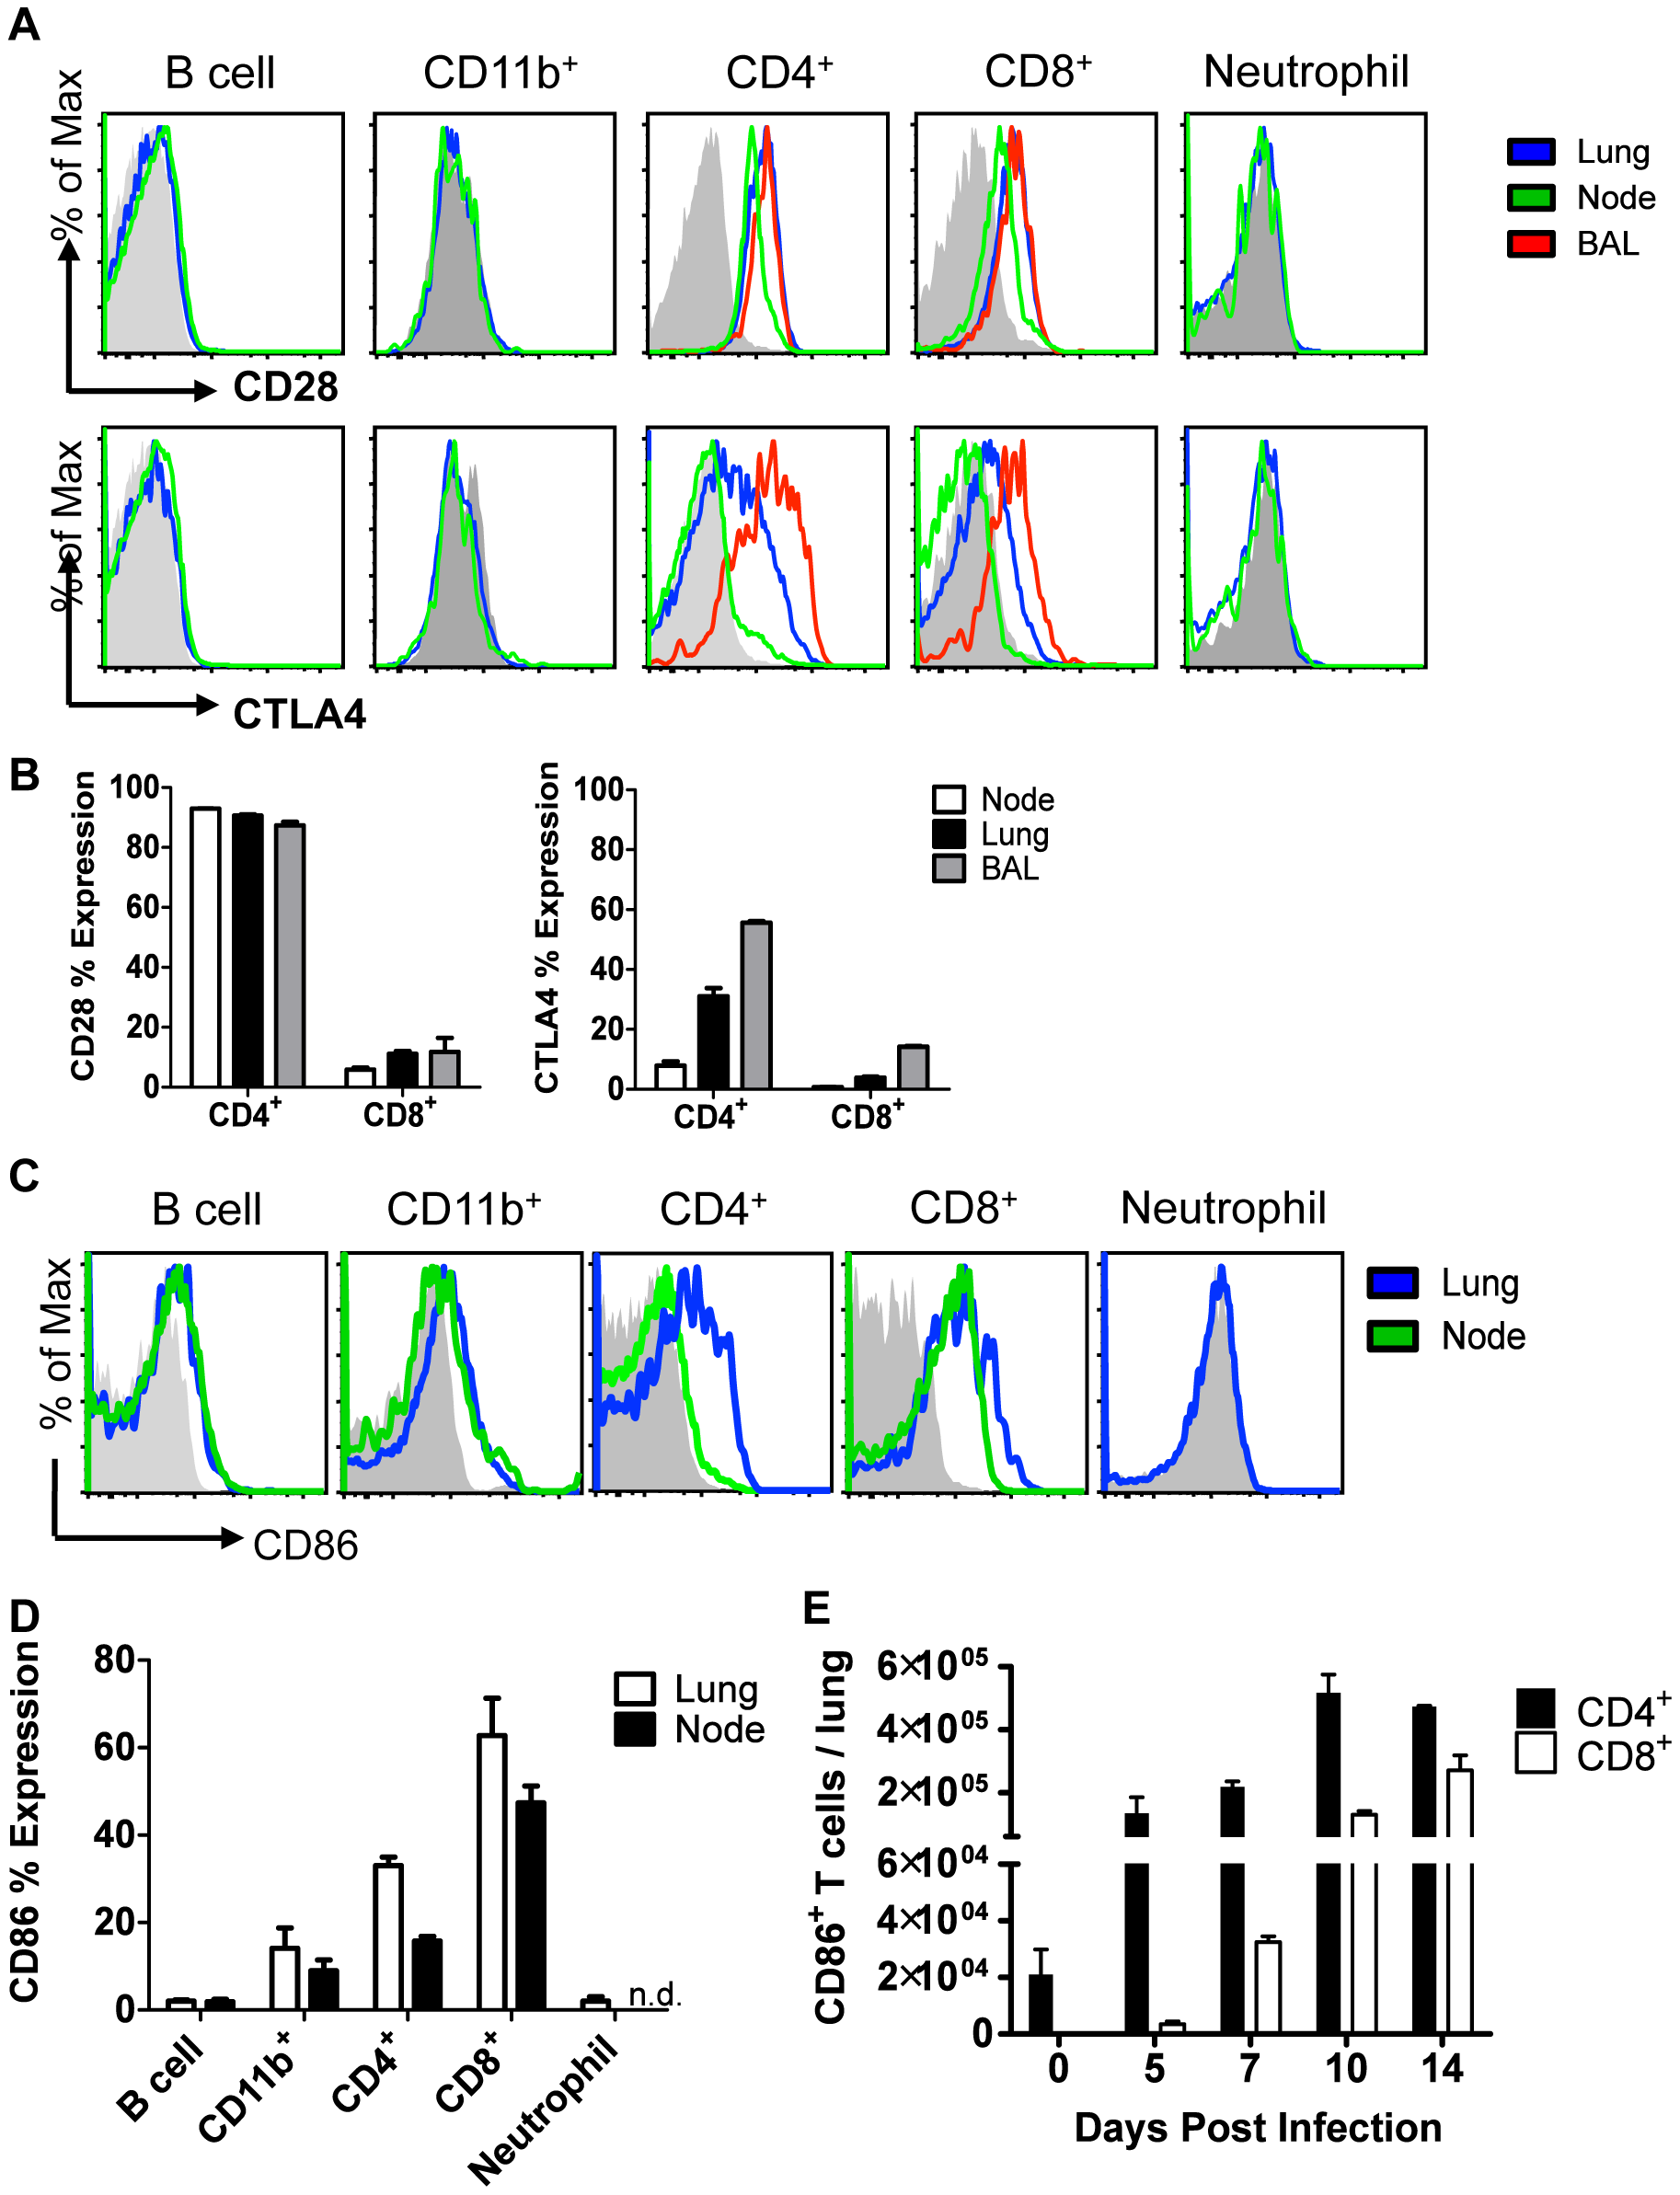 Cellular display of CD86 and its receptors CTLA4 and CD28 during resolution of IAV infection.